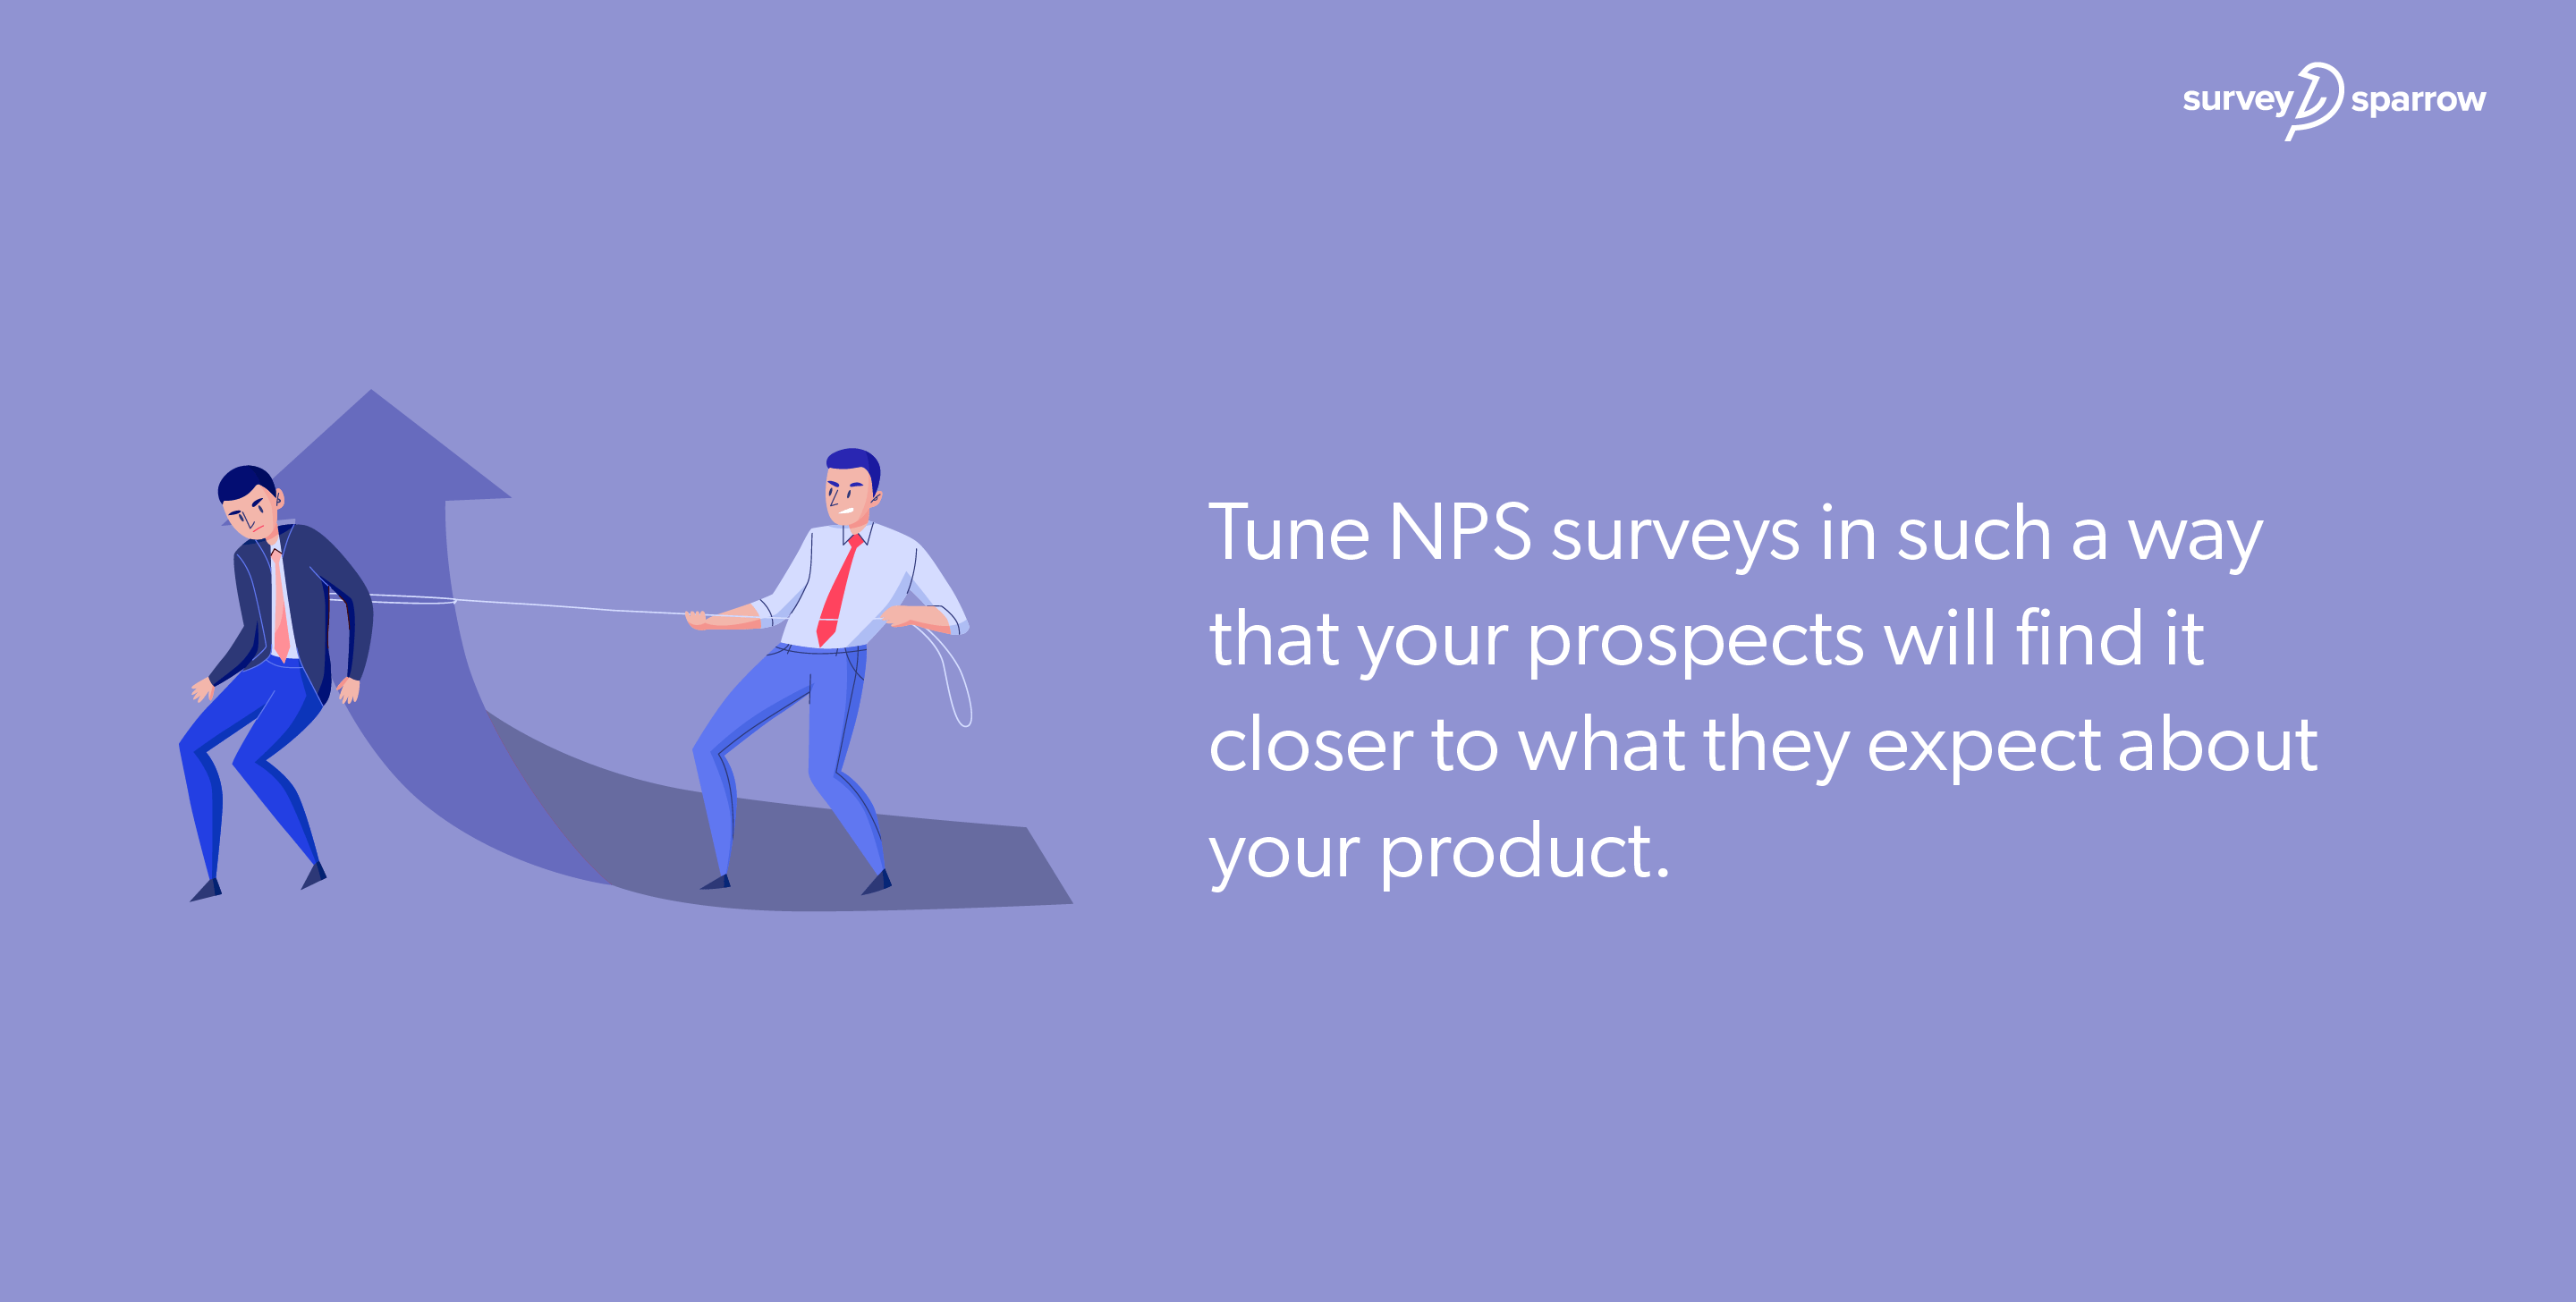 Tune NPS surveys in such a way that your prospects will find it closer to what they expect about your product.